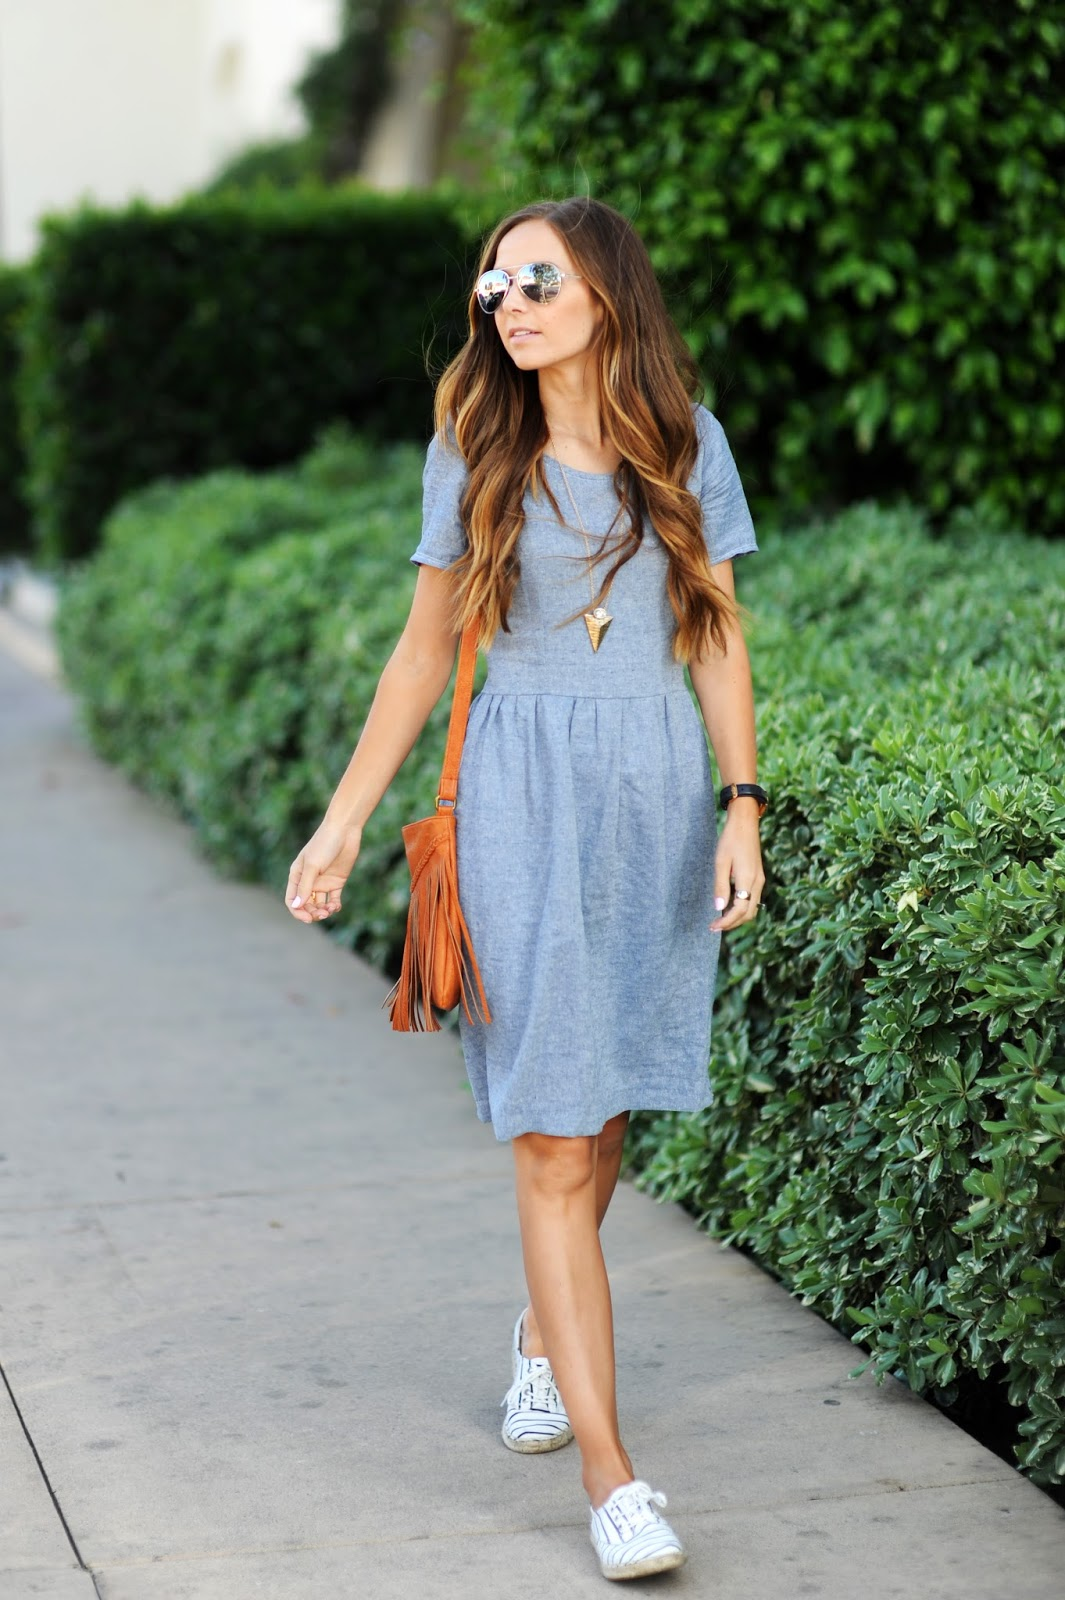 Clothing Styles In Trend During Summers